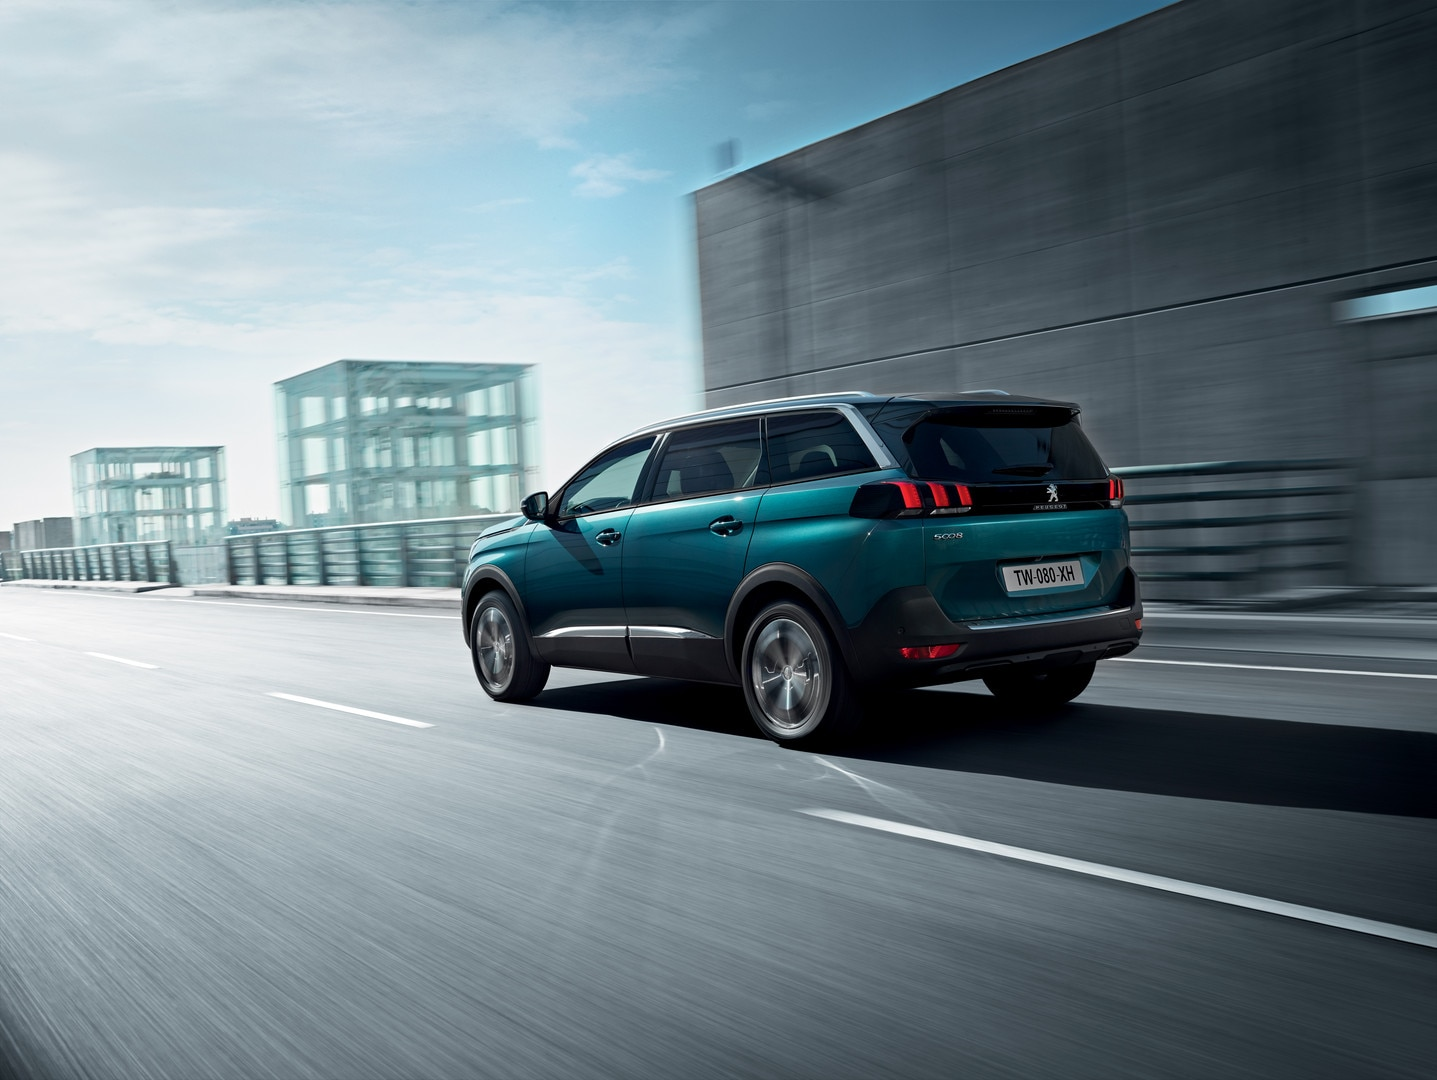 peugeot 5008 new car showroom 7 seat suv test drive today. Black Bedroom Furniture Sets. Home Design Ideas